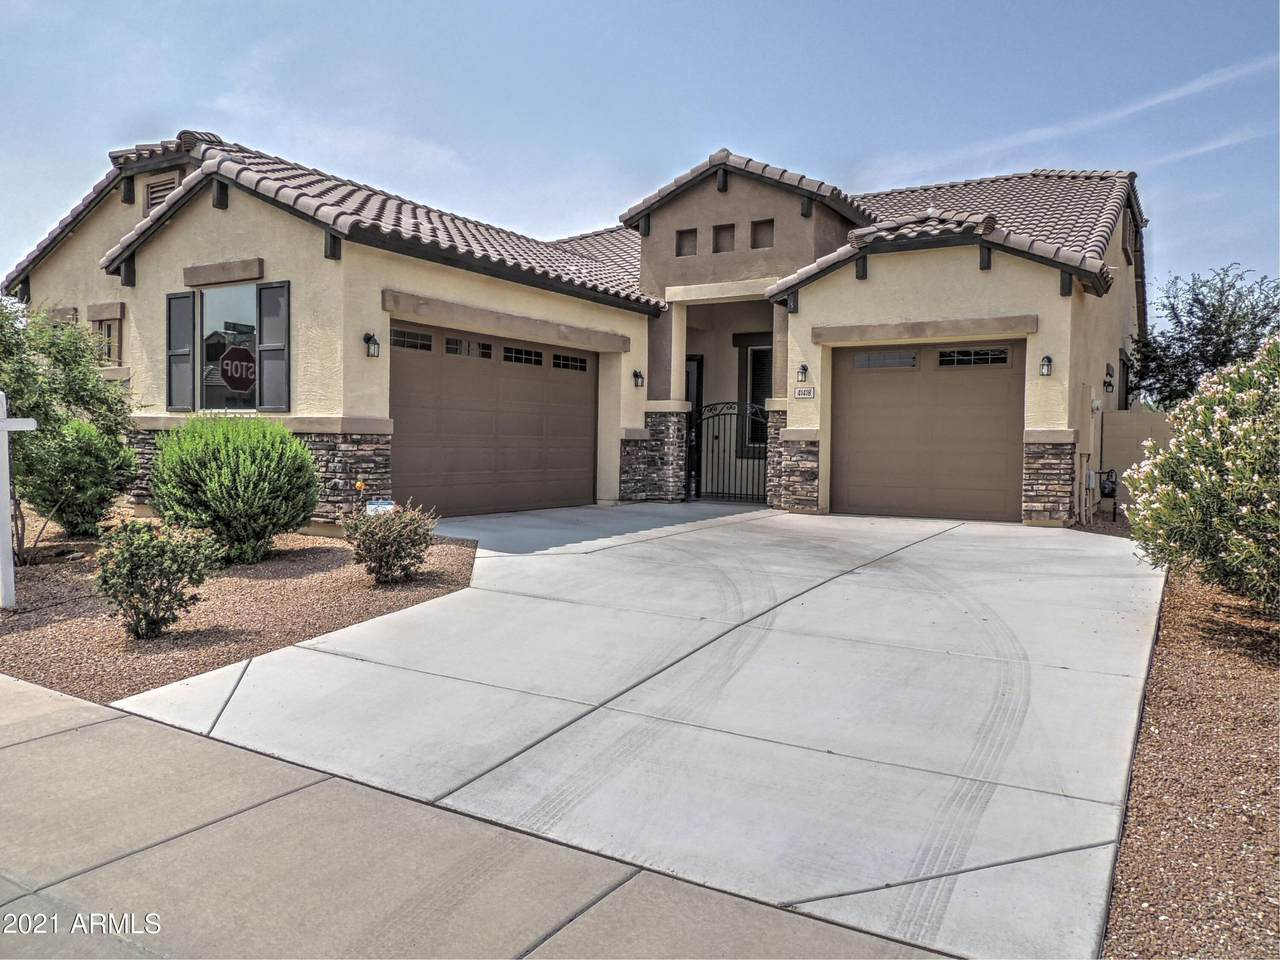 41418 Somers Drive - Photo 1